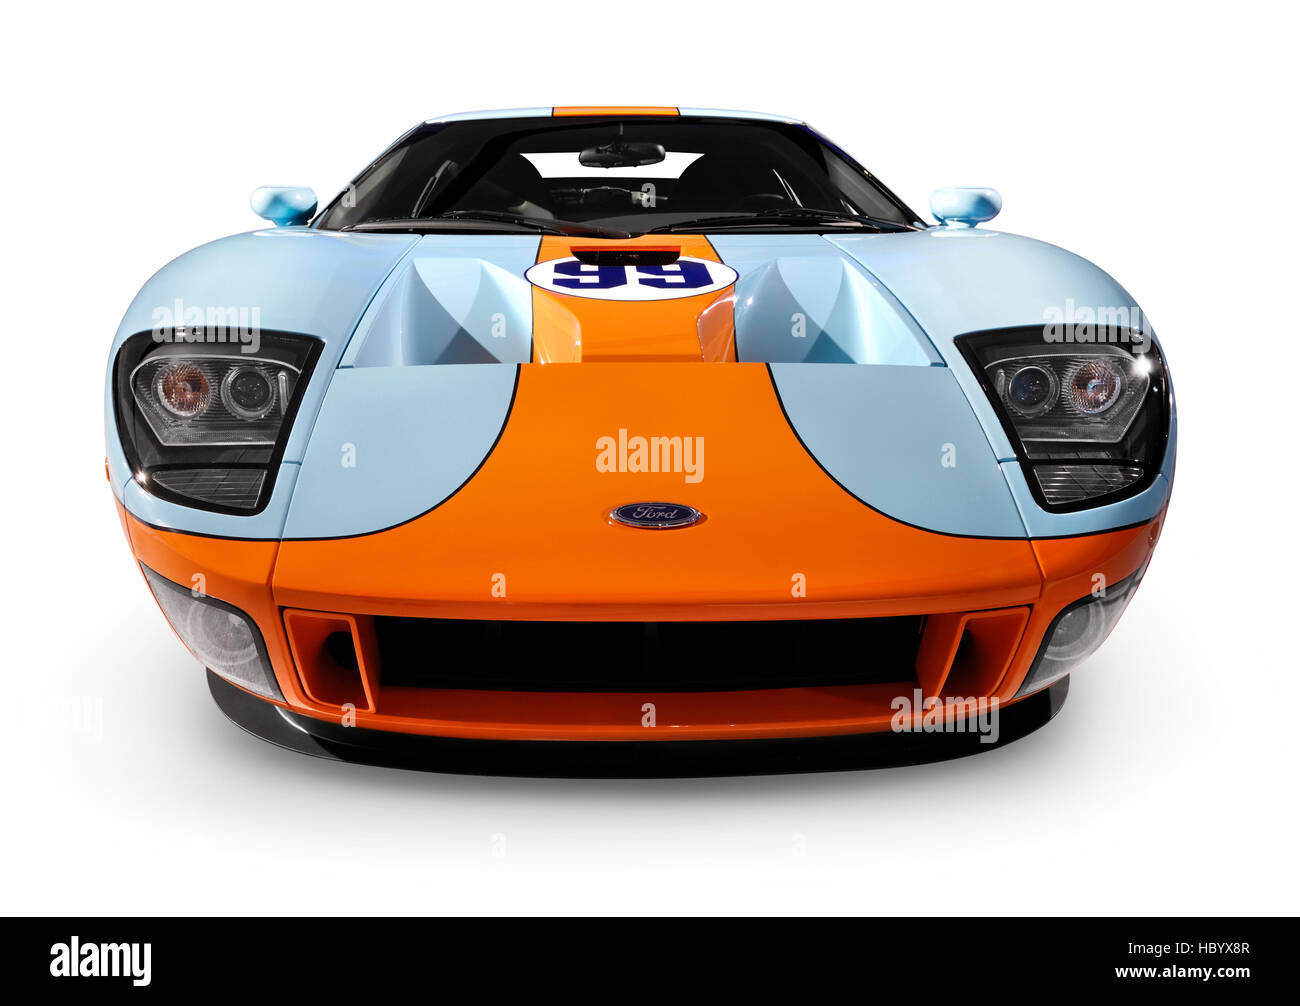 Ford Gt Sports Car Blue With Orange Front View Stock Image